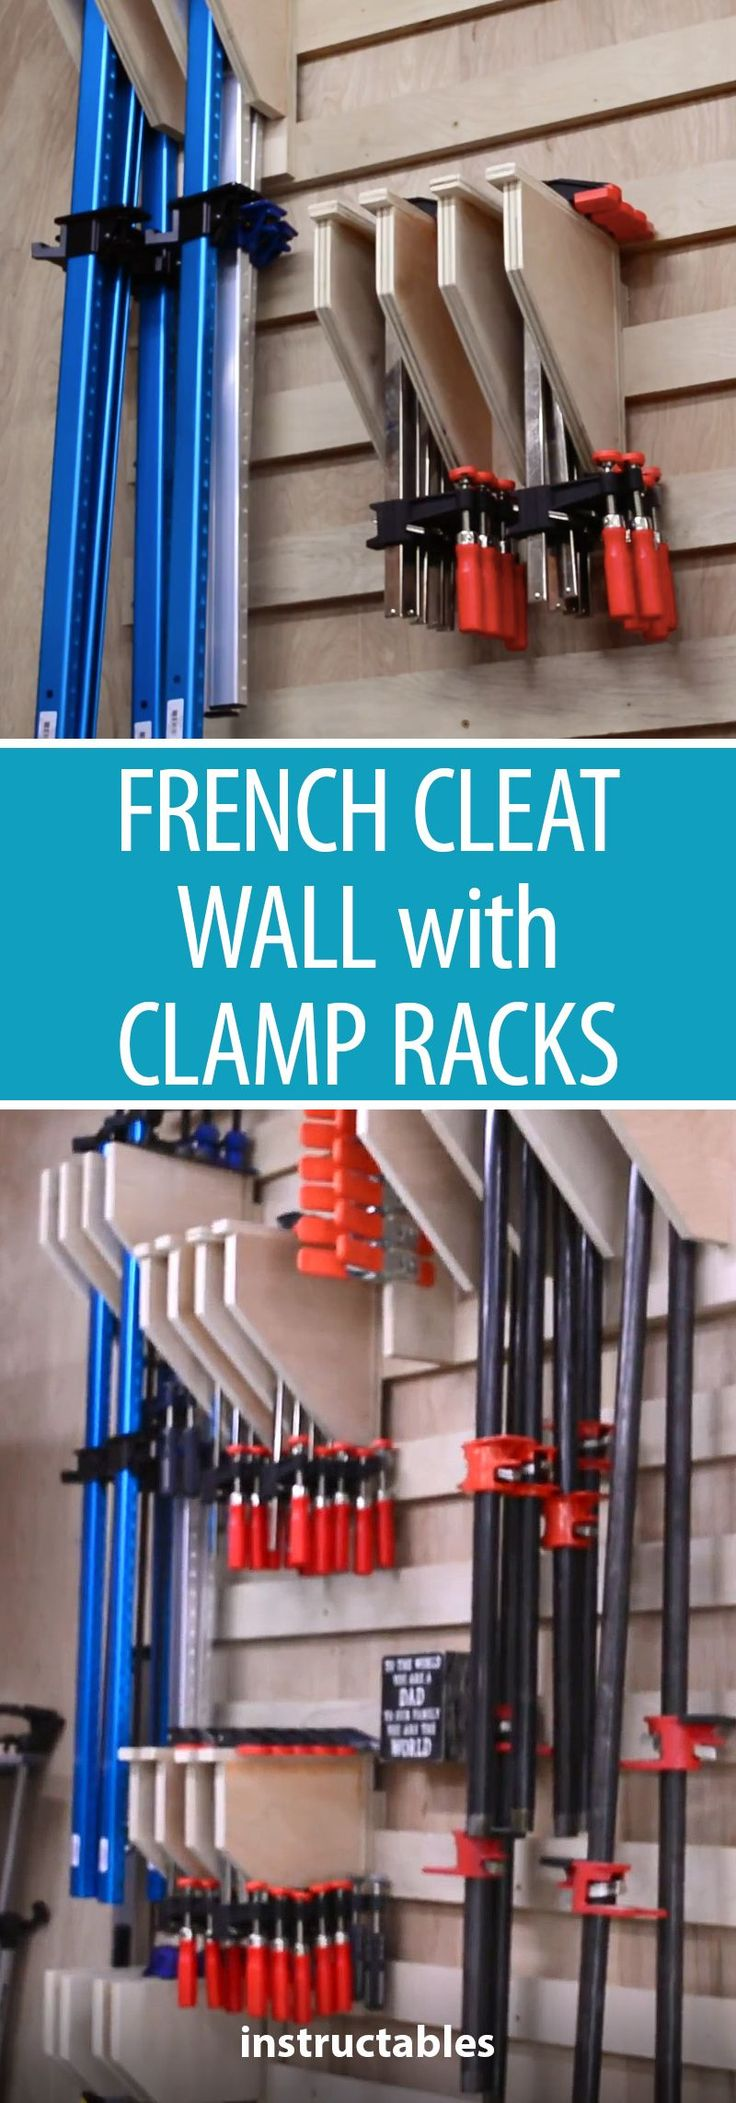 French Cleat Wall With Clamp Racks